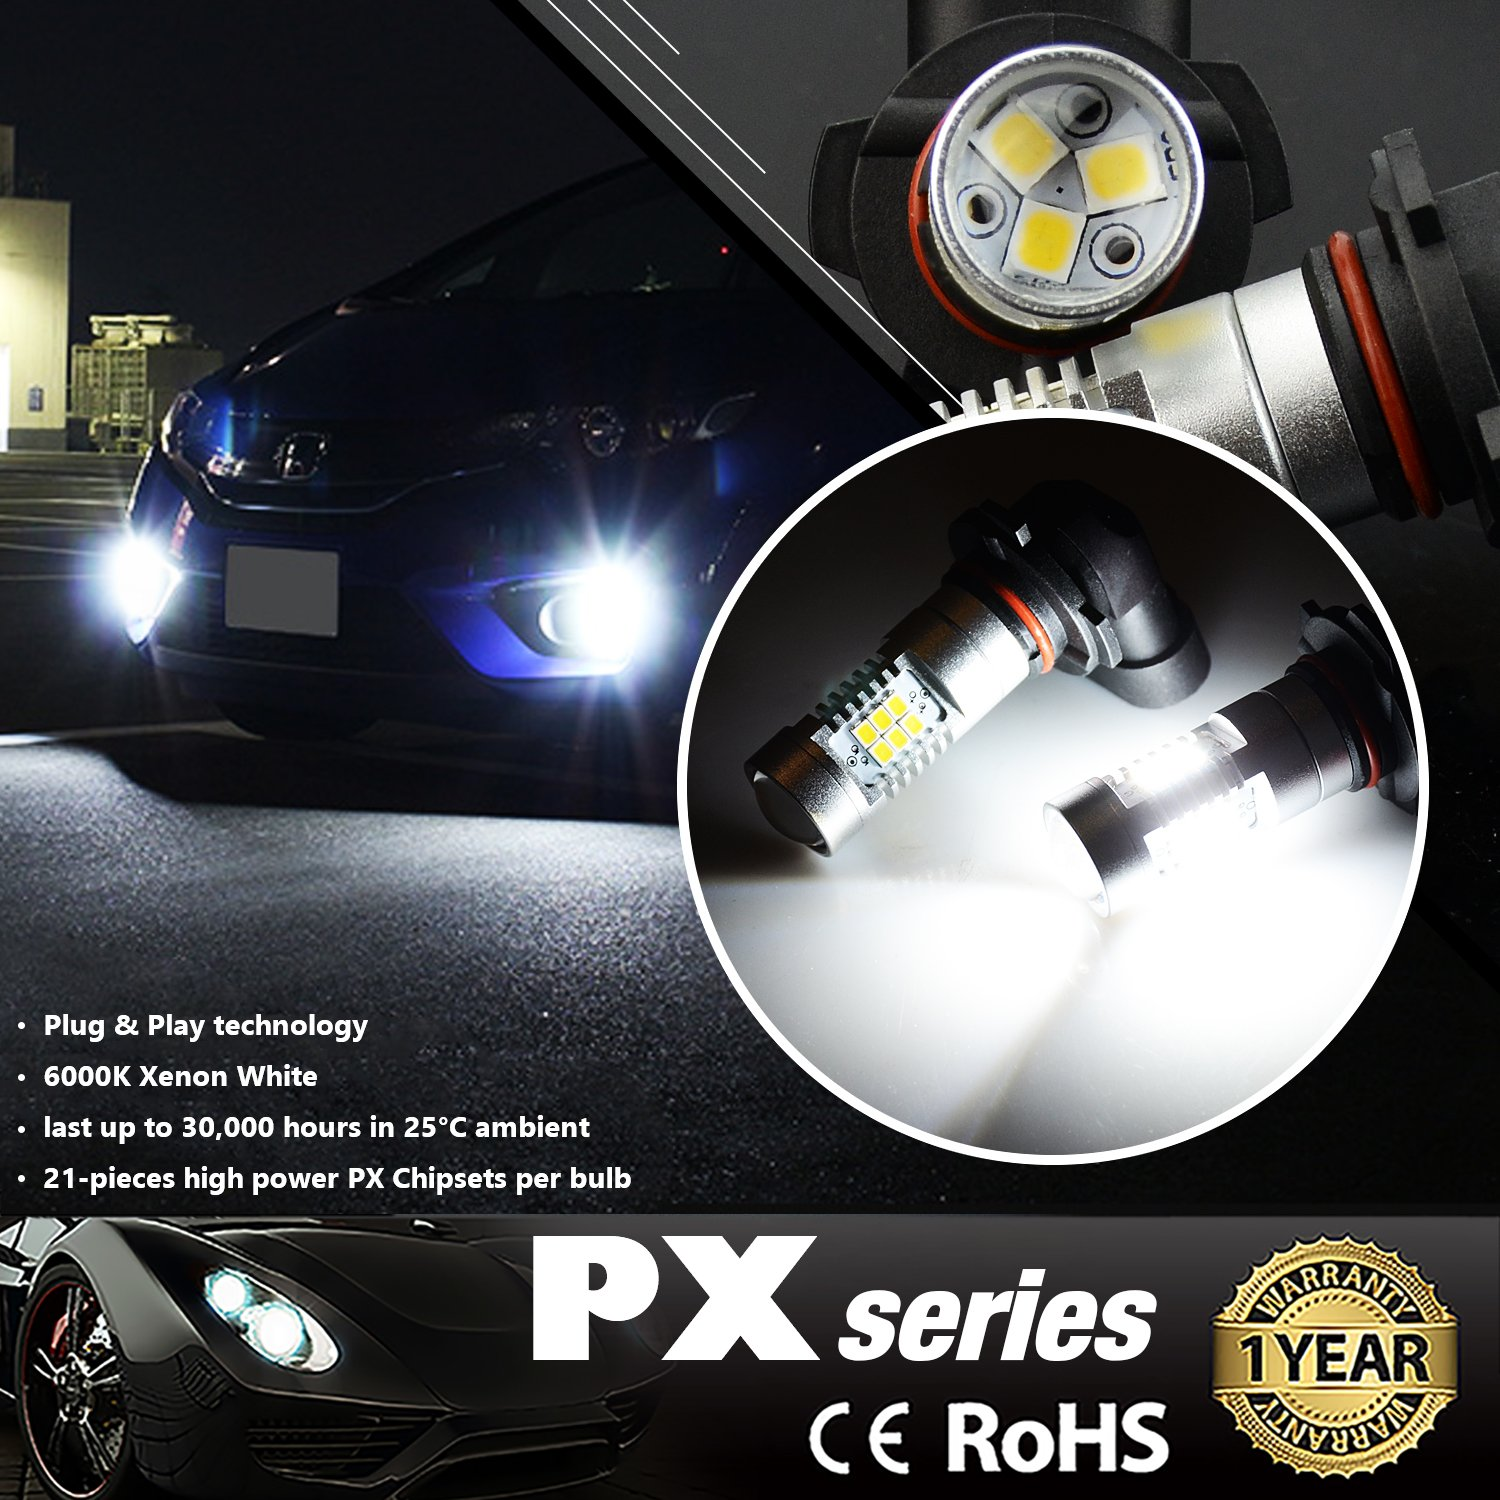 JDM ASTAR 2520 Lumens Extremely Bright PX Chips H10 9140 9145 LED Fog Light Bulbs with Projector for DRL or Fog Lights, Xenon White by JDM ASTAR (Image #4)